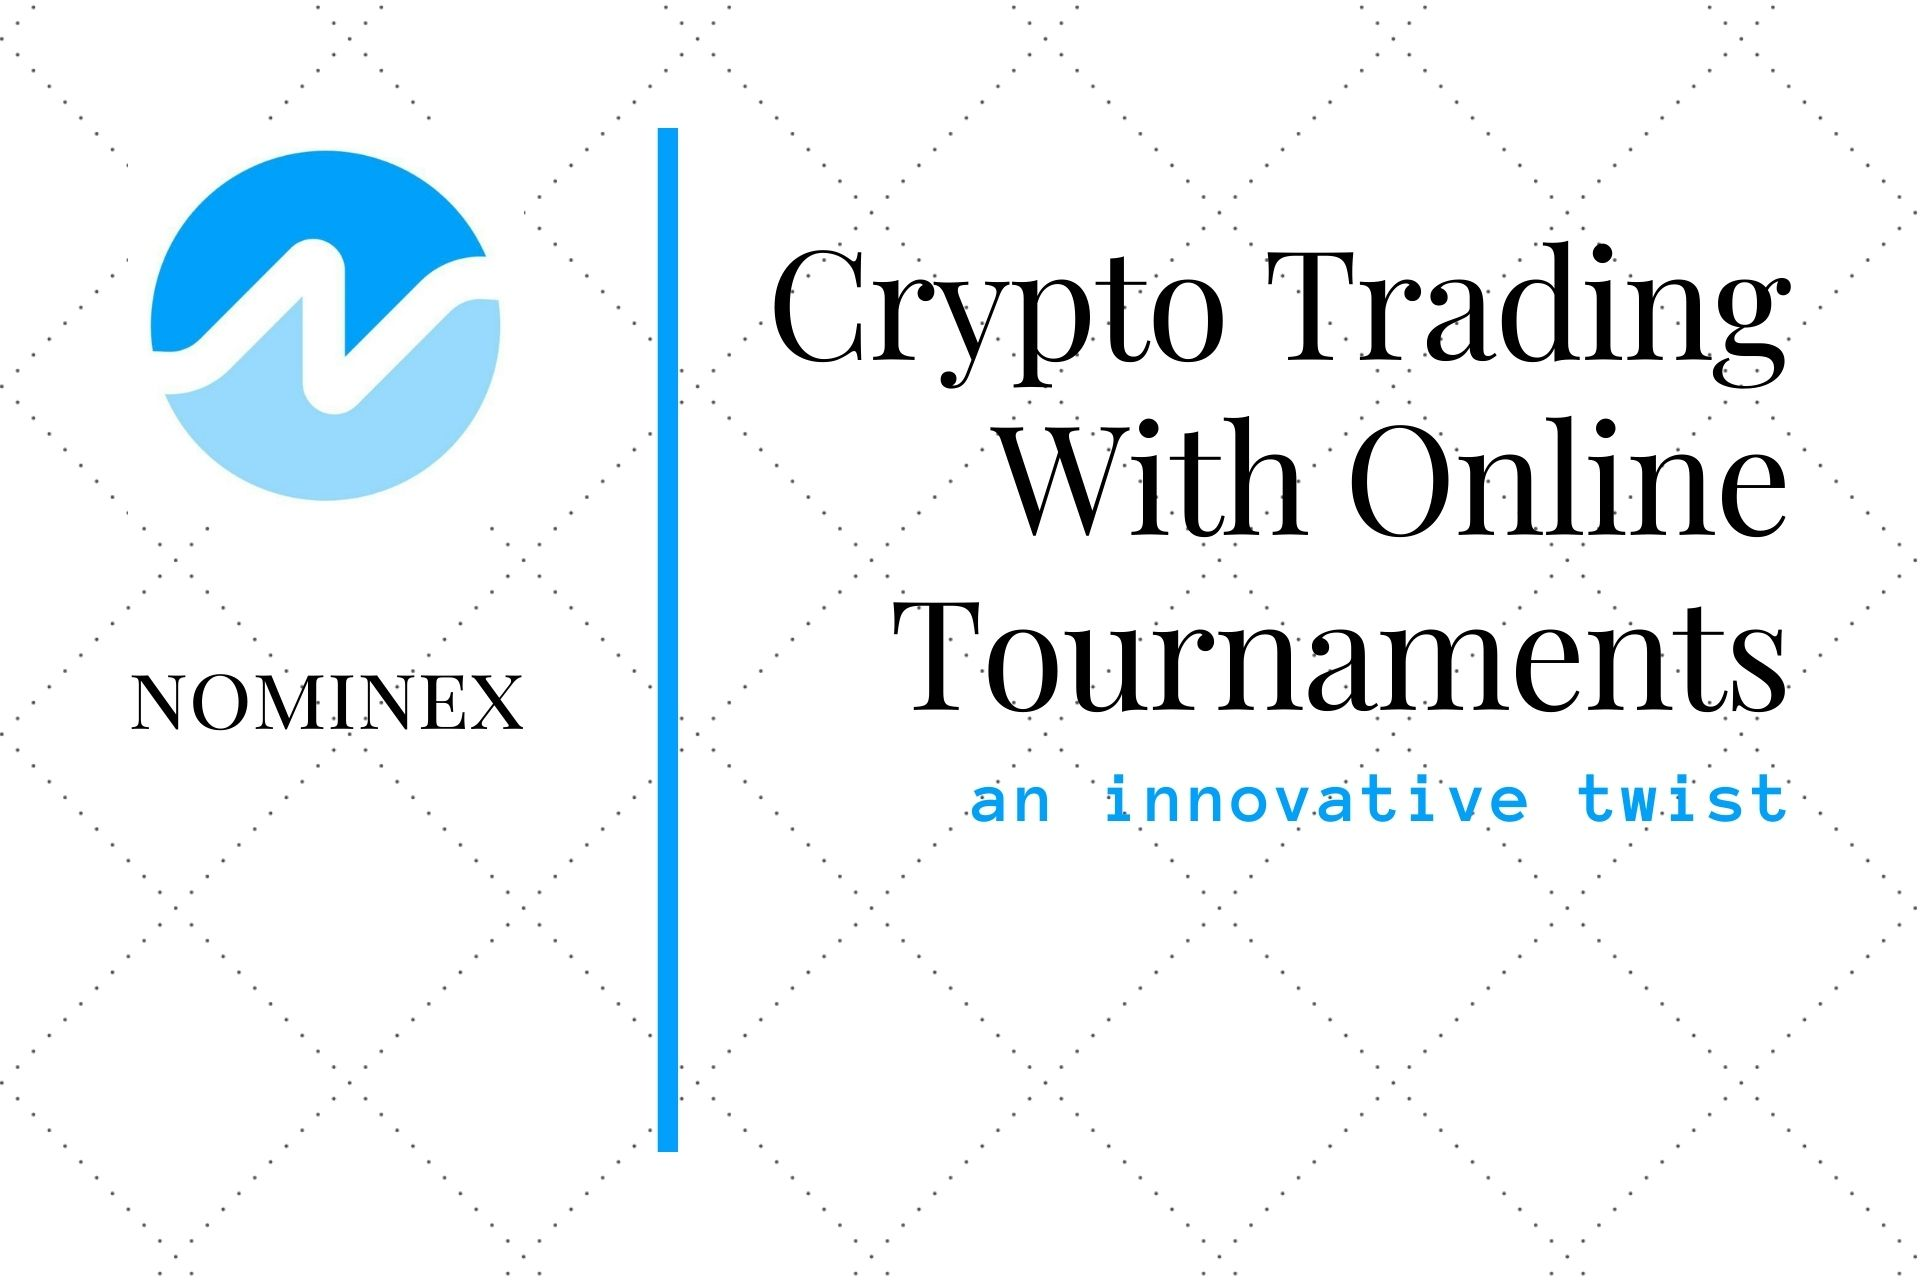 Nominex   Modifying the Crypto Trading Bottomline with Online Tournaments